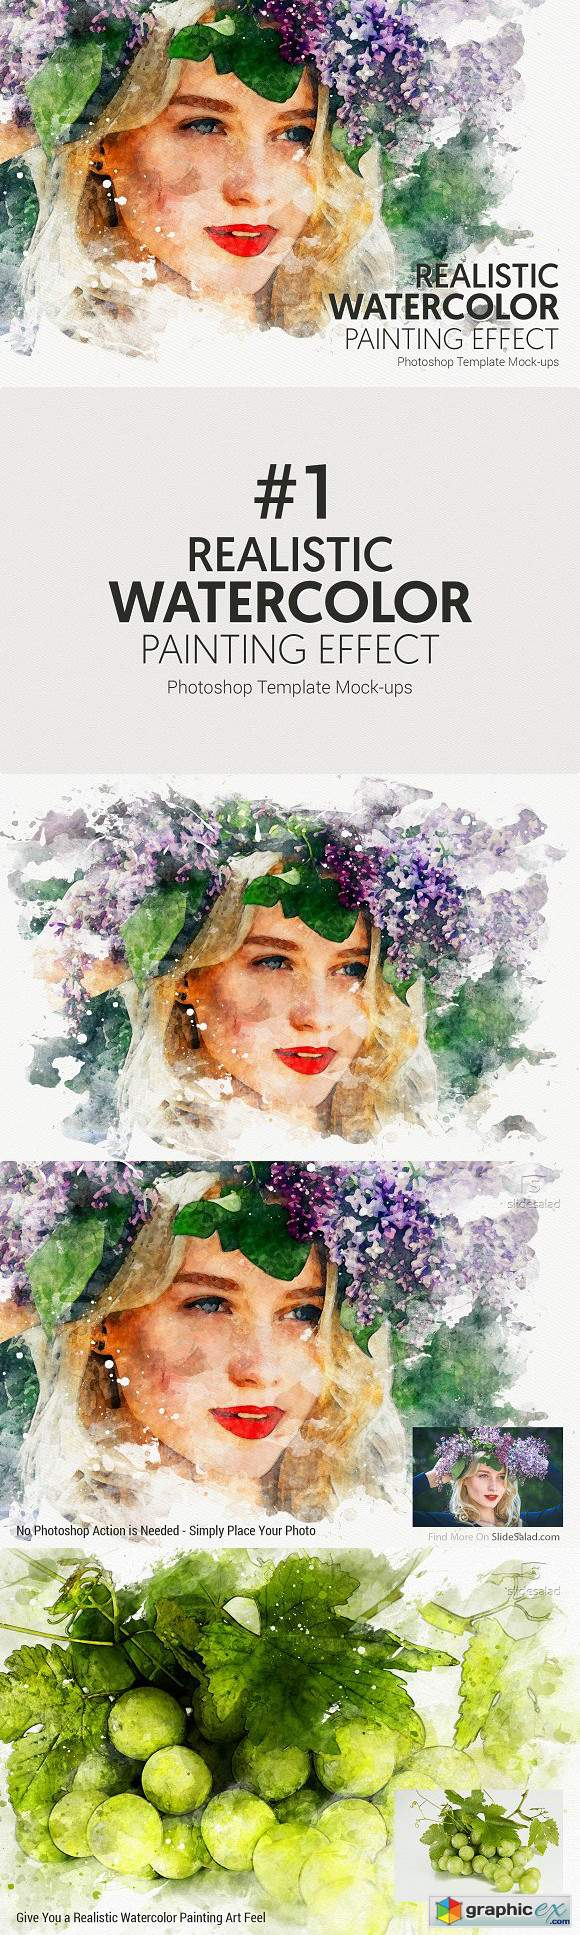 1 Watercolor Photoshop Mock-ups